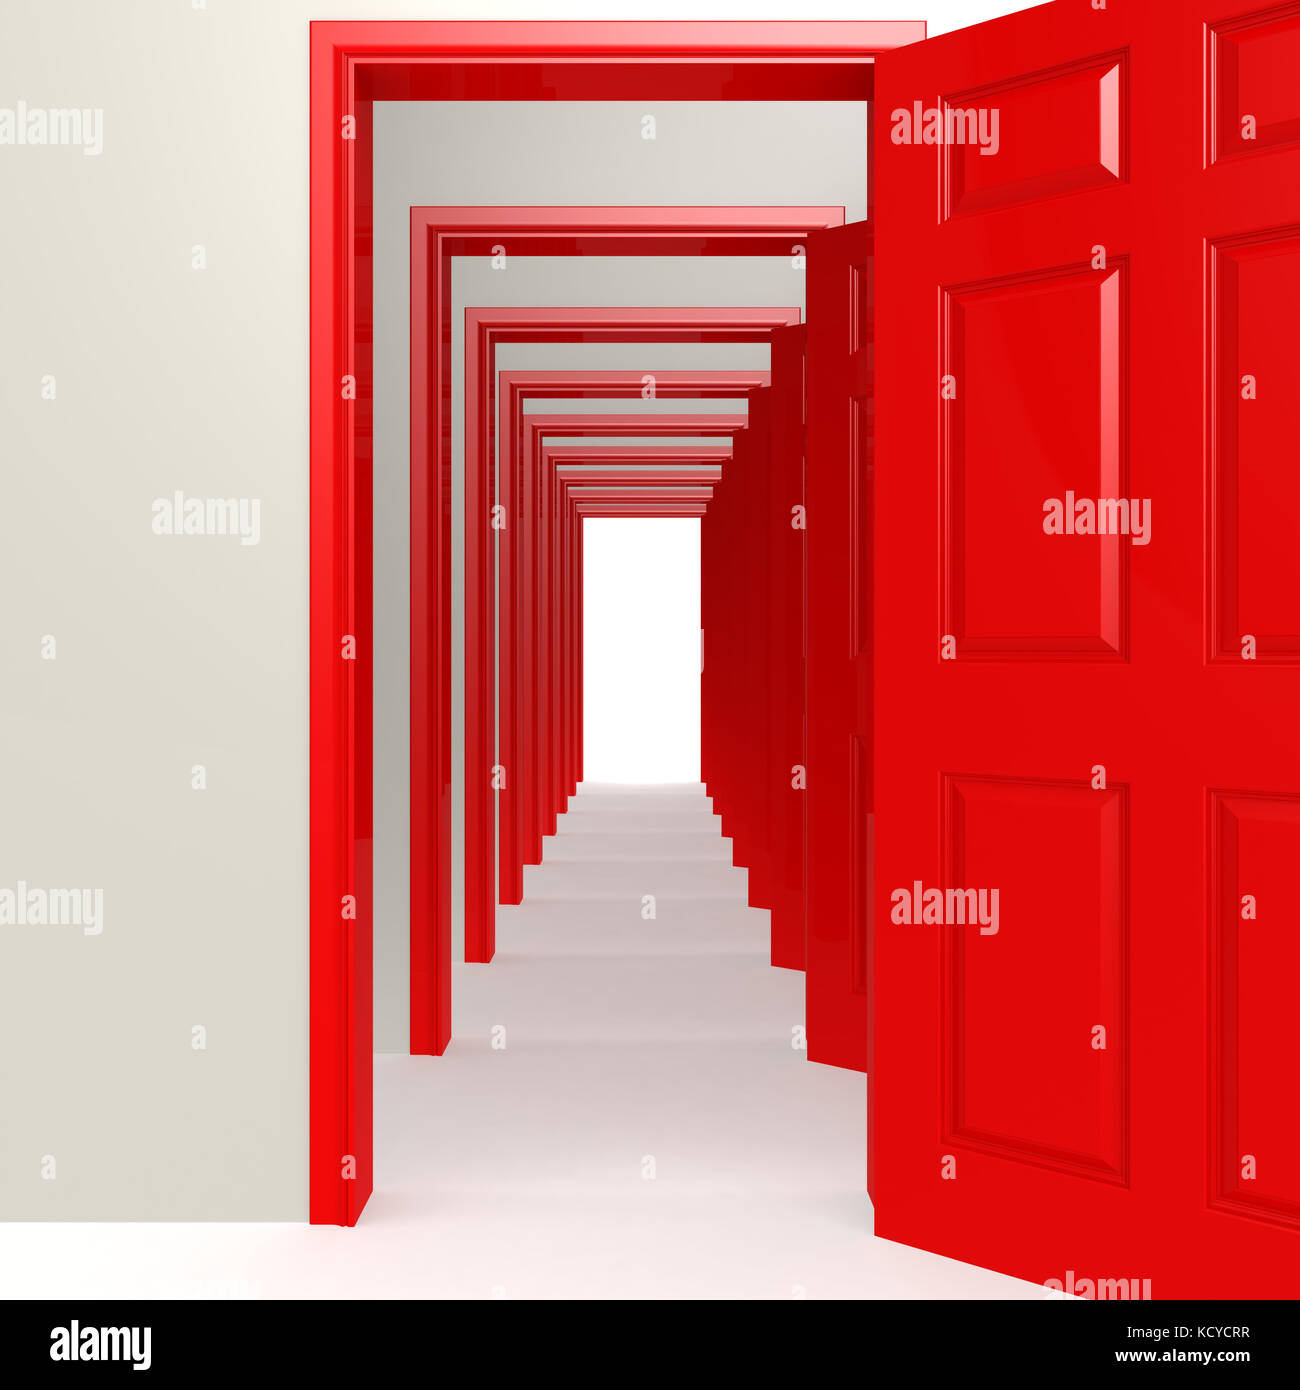 Multiple red doors in a row image with hi-res rendered artwork that could be used for any graphic design. & Multiple red doors in a row image with hi-res rendered artwork that ...